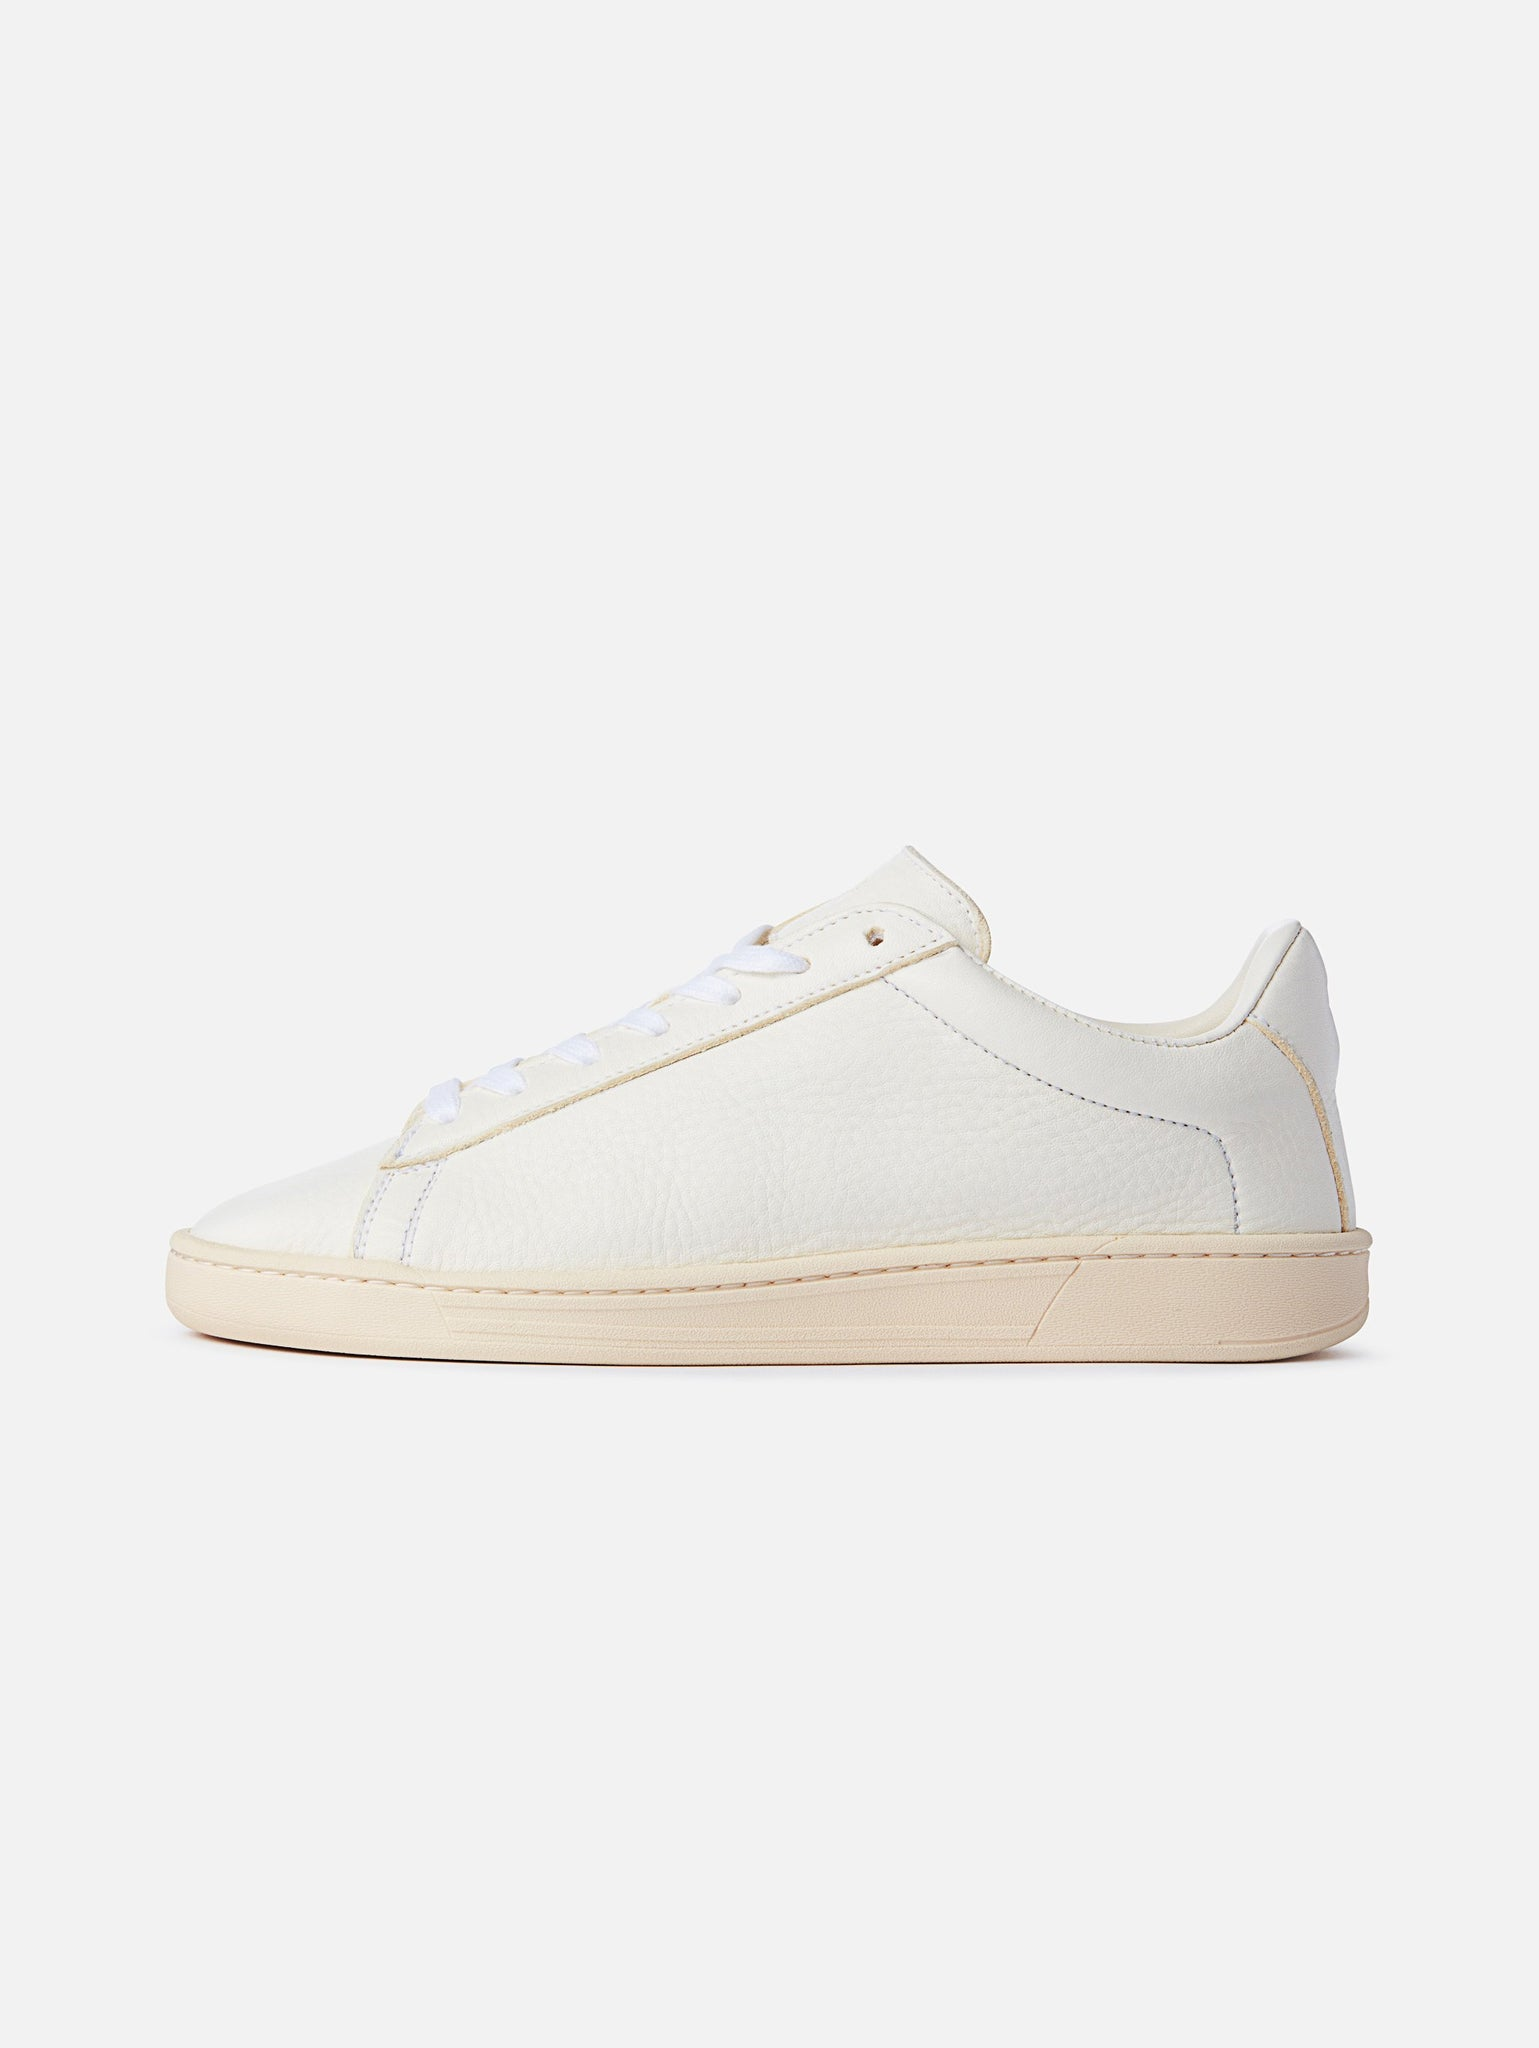 The 1970 - All White Leather Trainerproduct_vendor#product_type